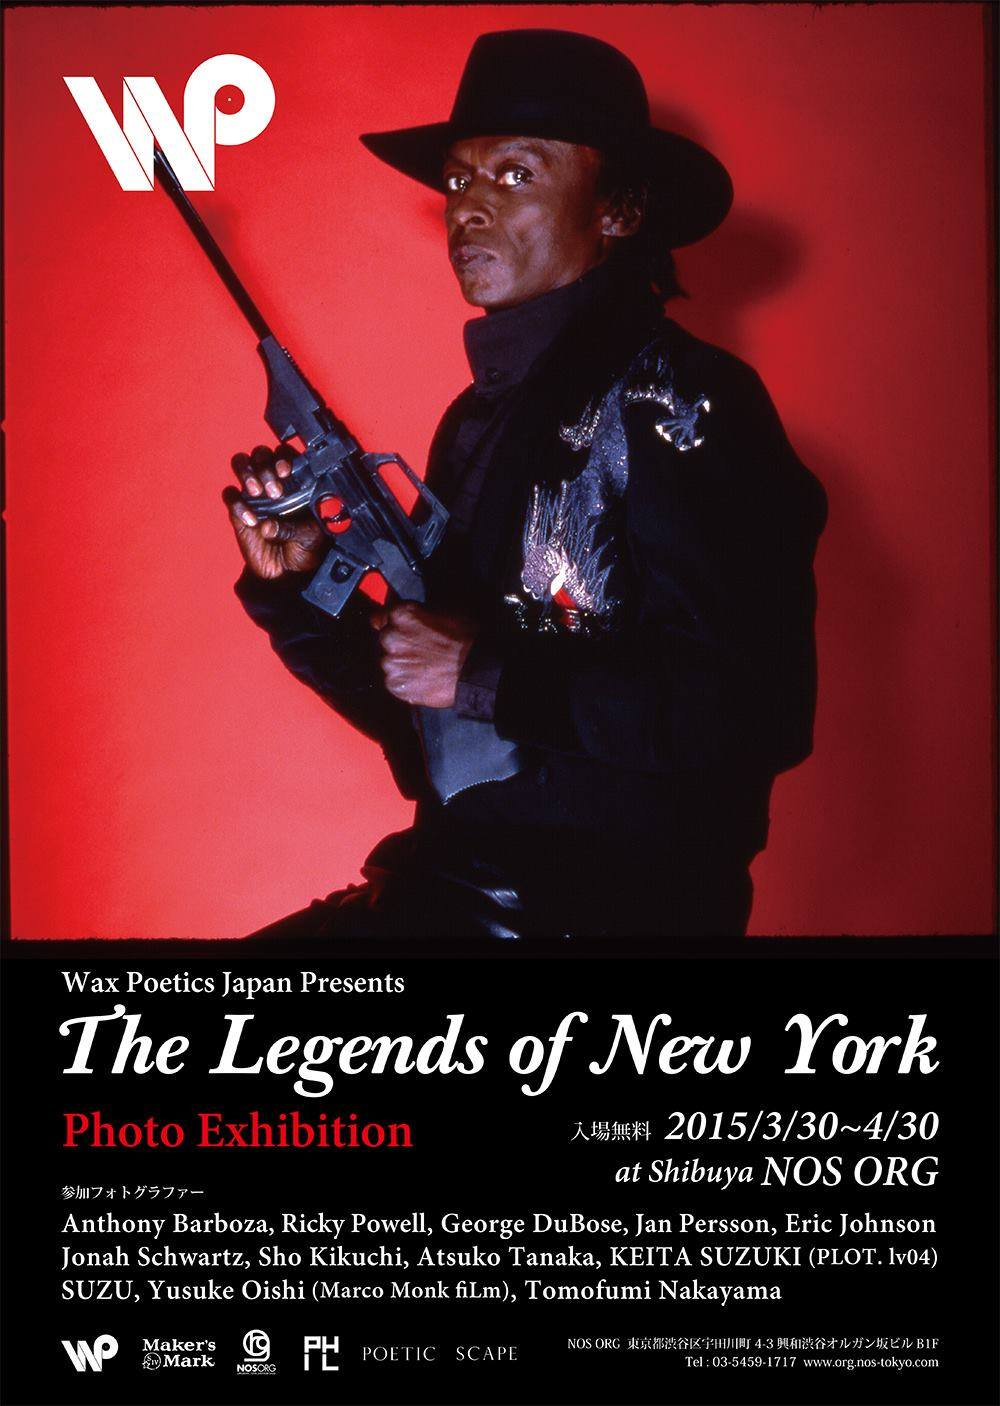 The Legends of New York  Group Exhibition  by Wax Poetics Japan  @ Nos Shibuya  3/30-5/13/2015  Poster Image